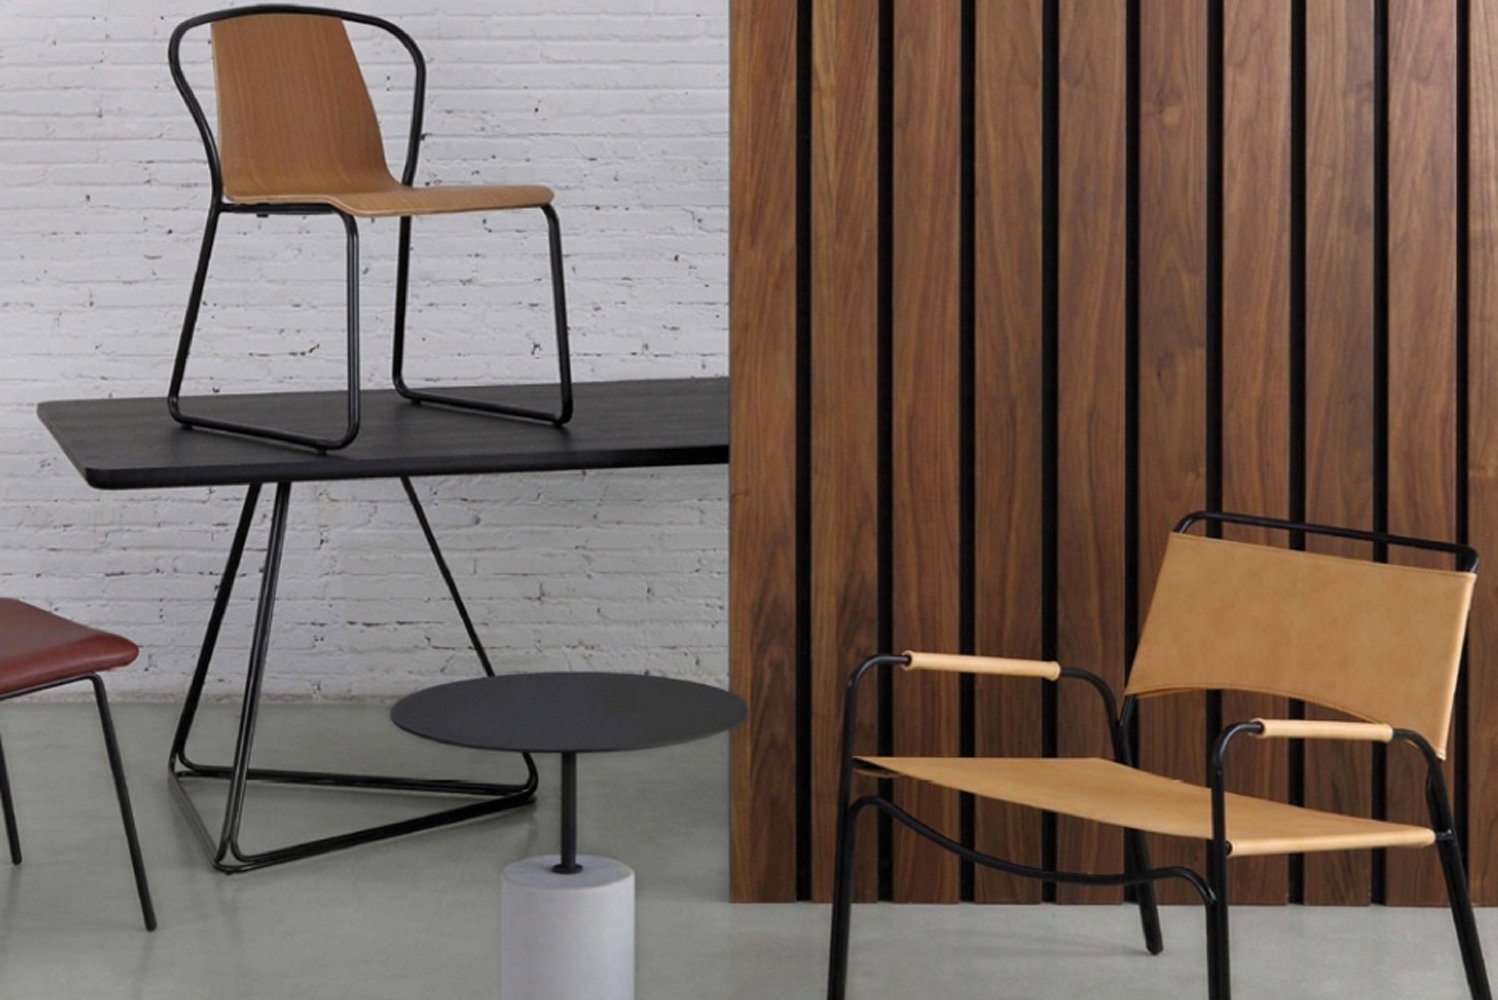 m.a.d. design has launched two new chairs: Sling and Trace.